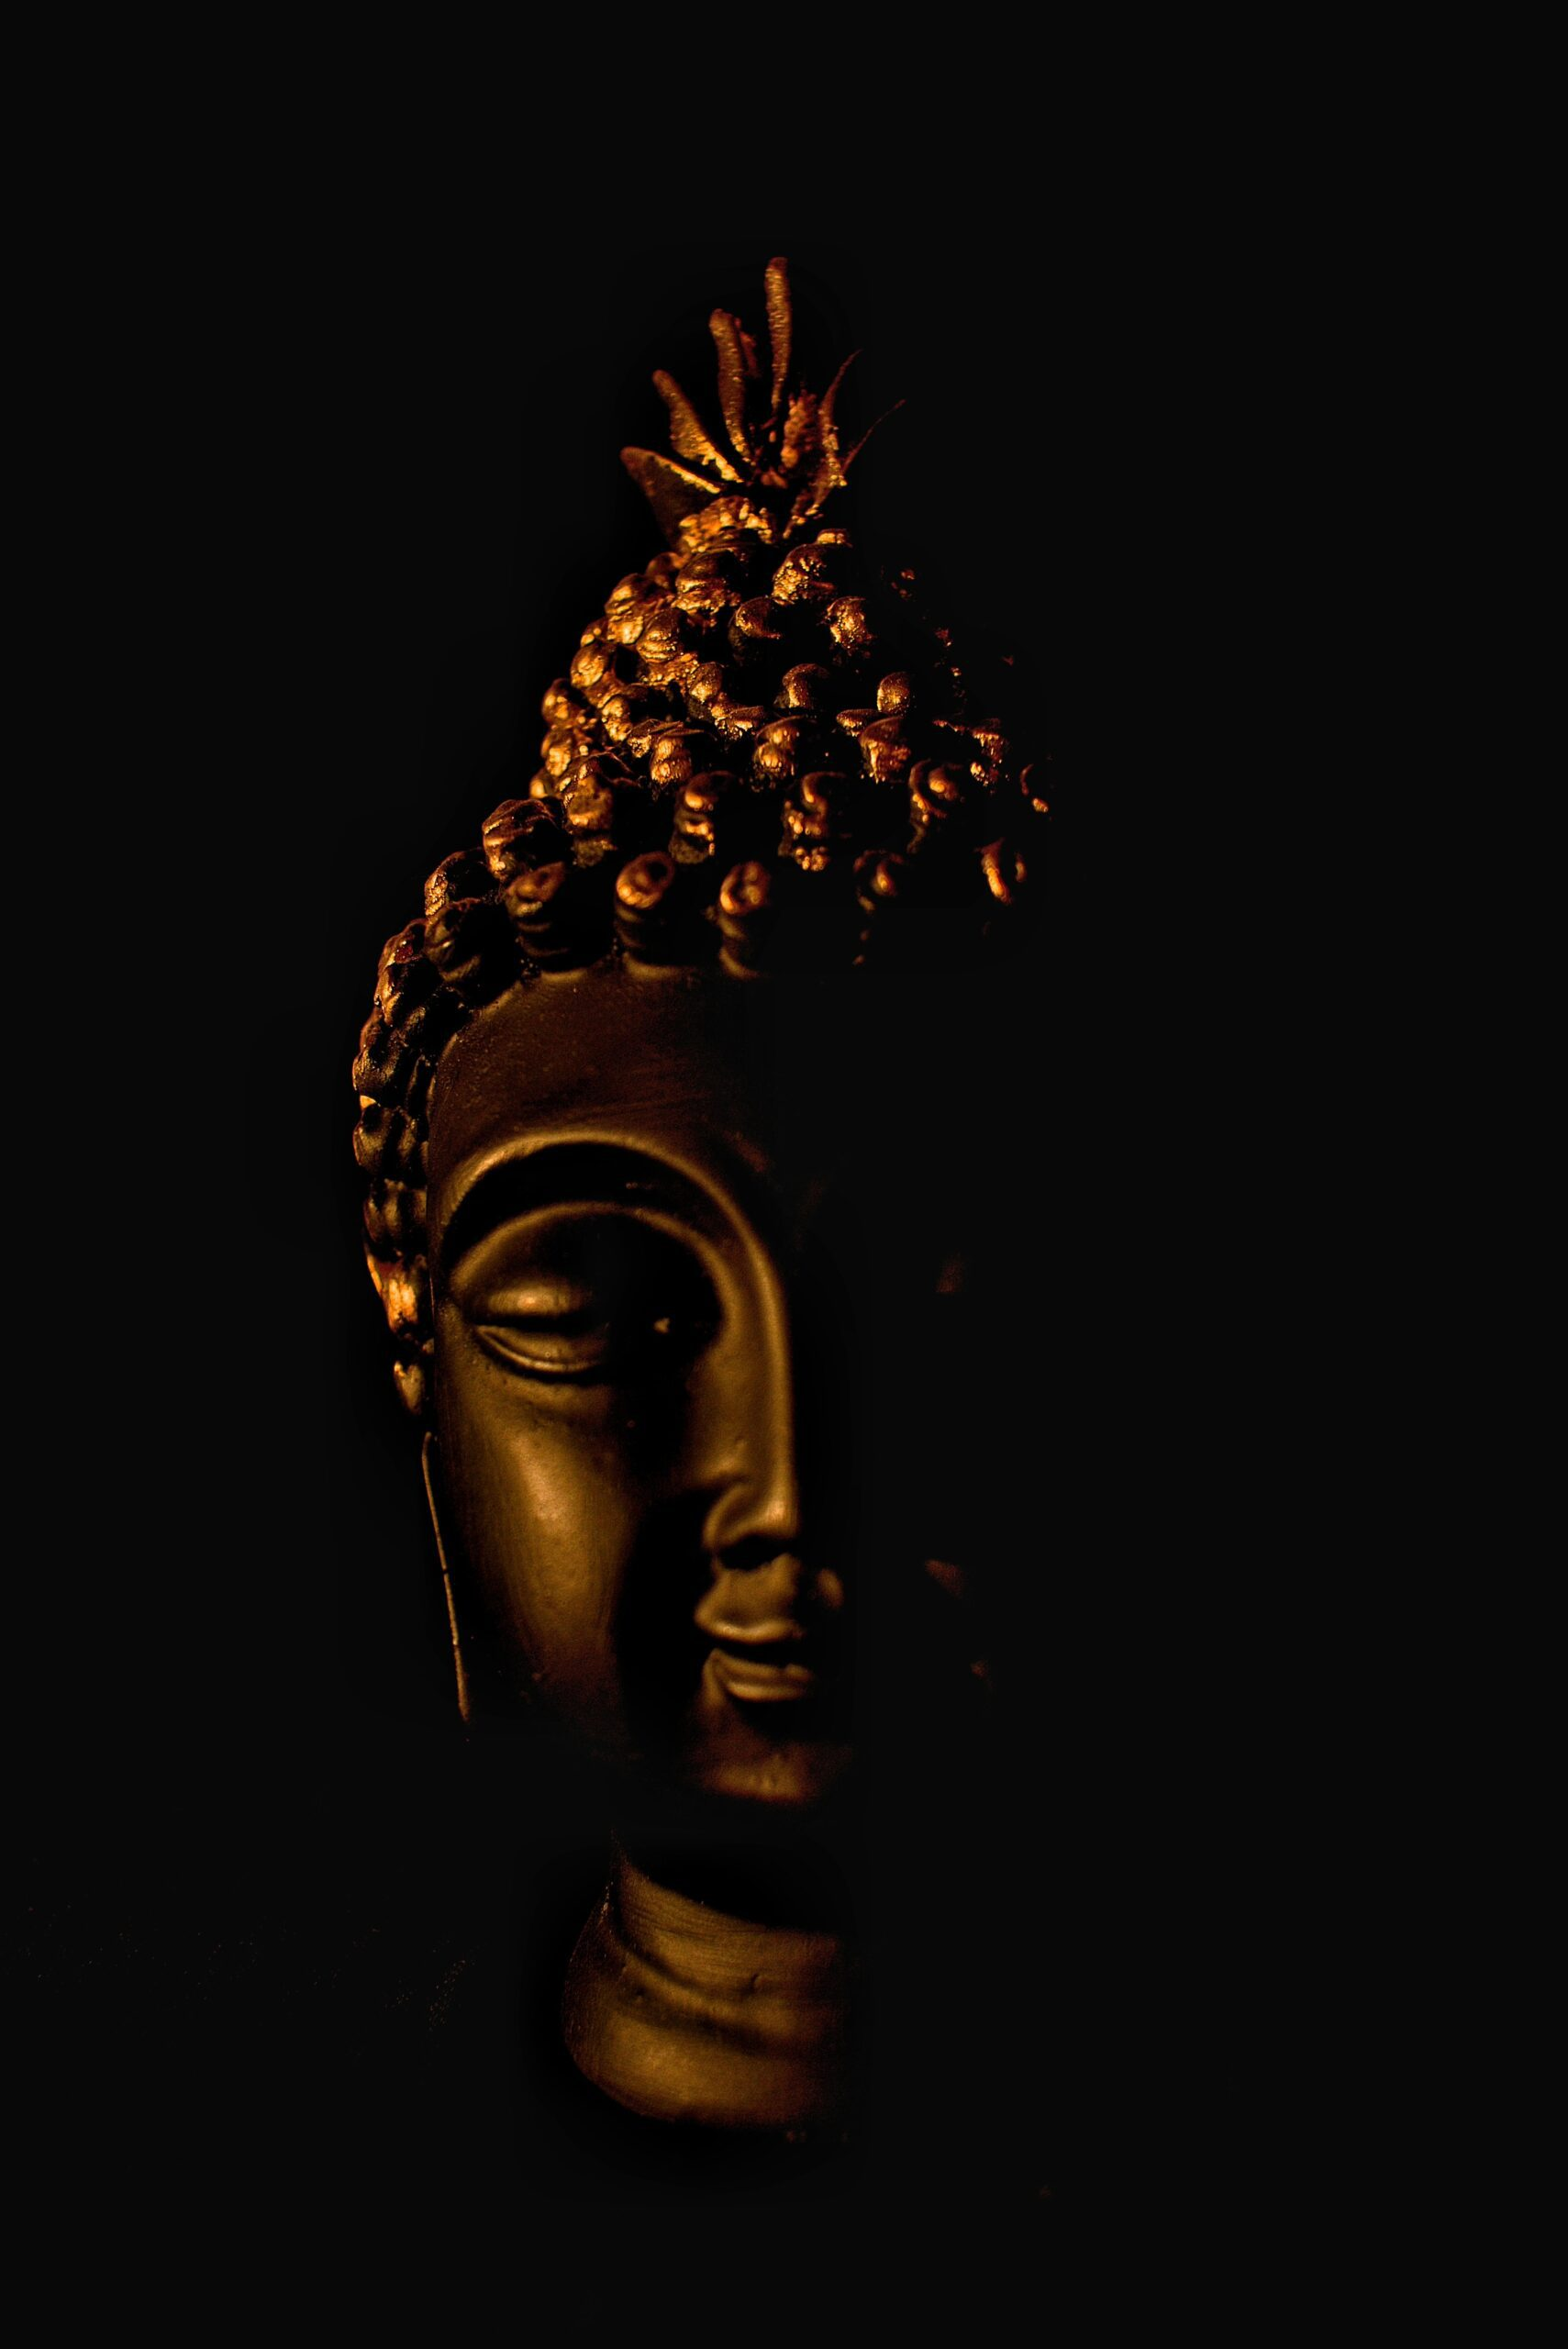 Buddha head with black background by Monil Andharia